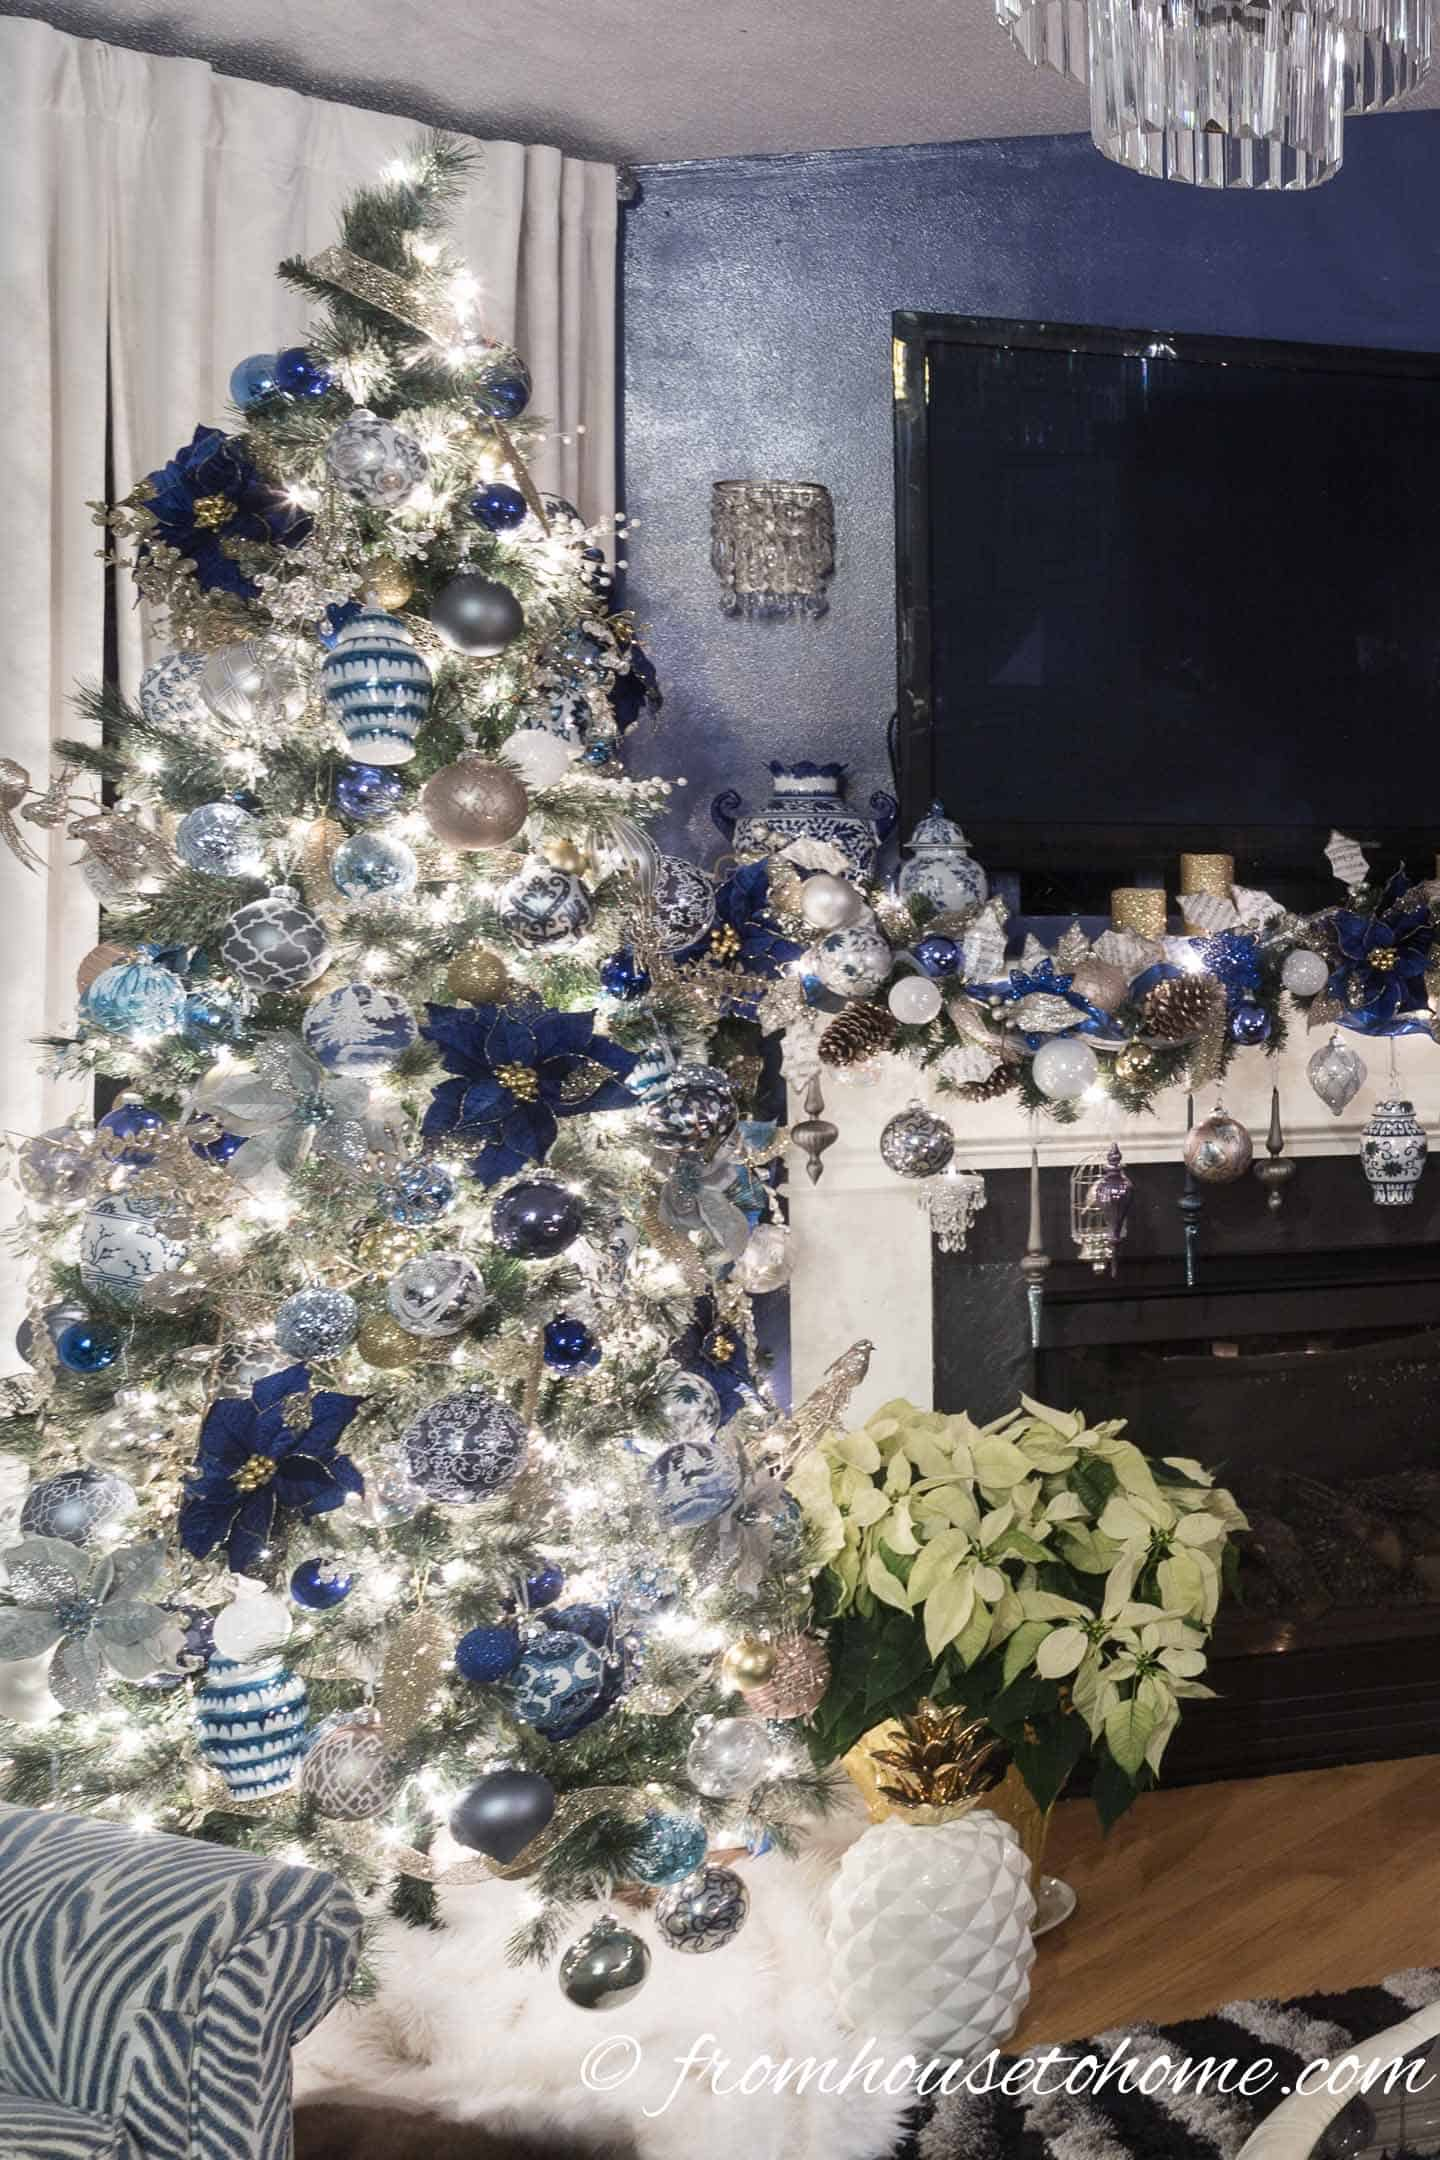 Blue and white Christmas tree beside a fireplace with a blue and white garland